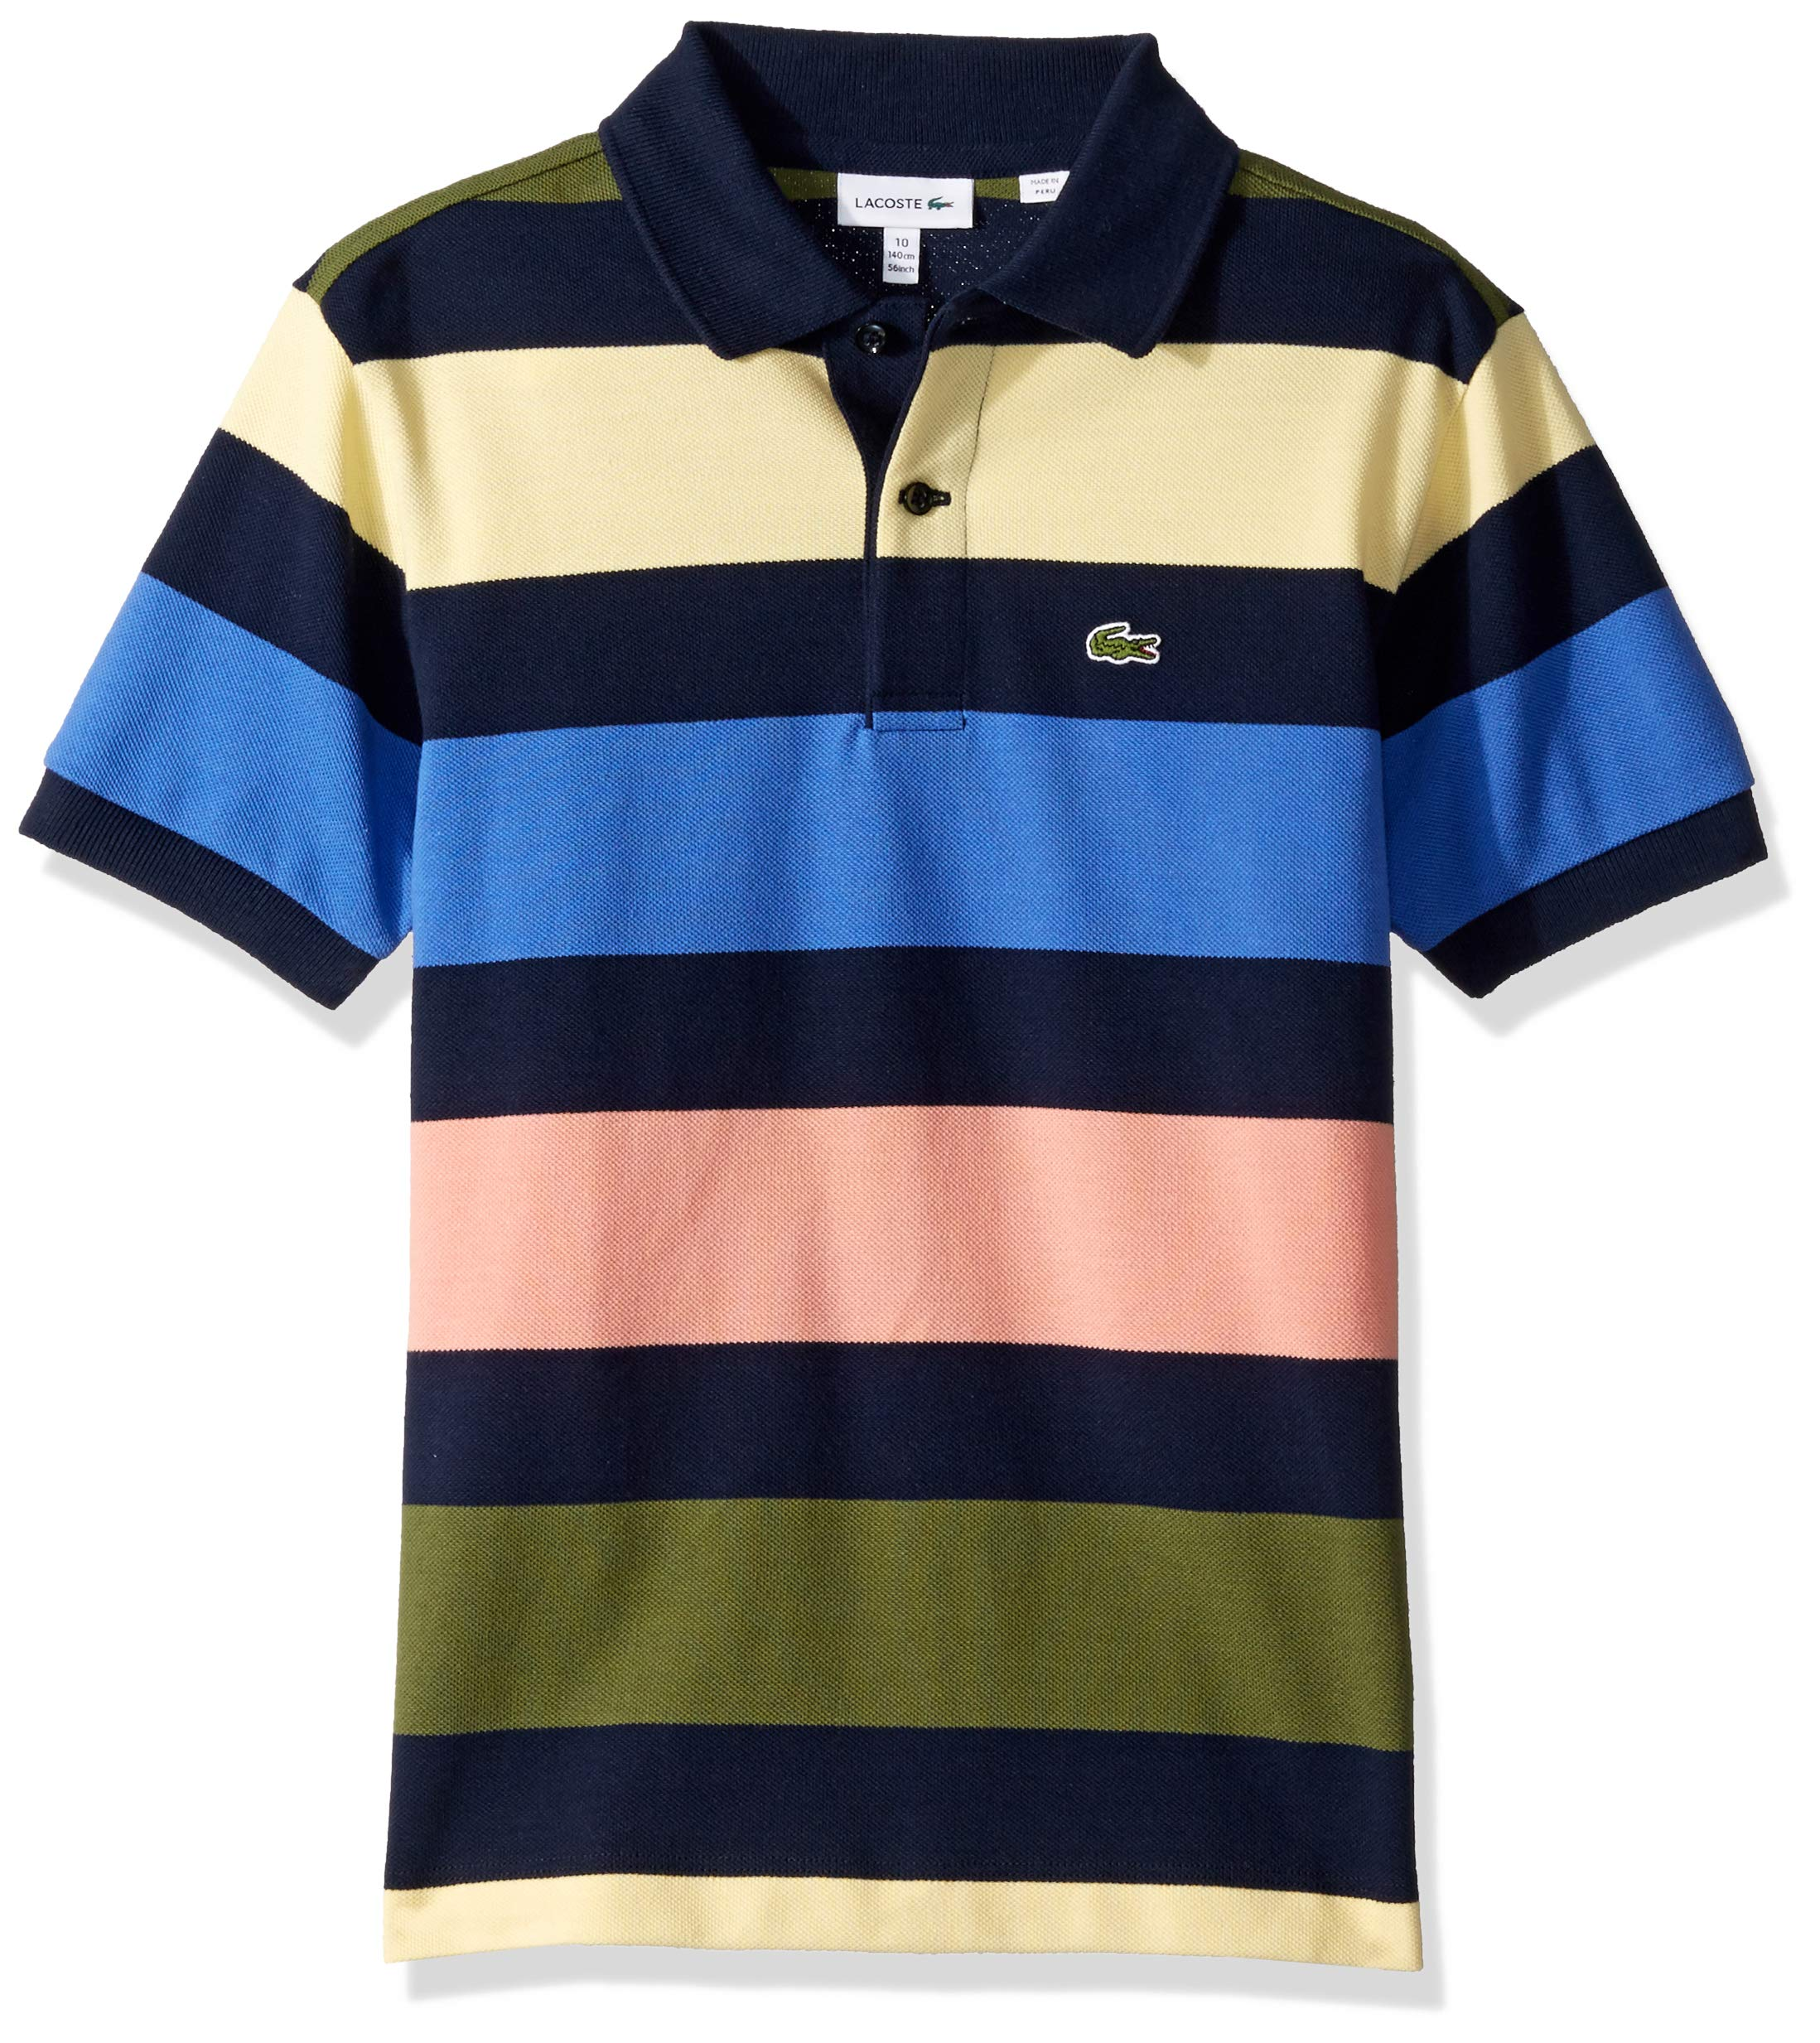 Lacoste Little BOY Colorful Striped Pique Polo, Navy Blue/Multi, 4YR